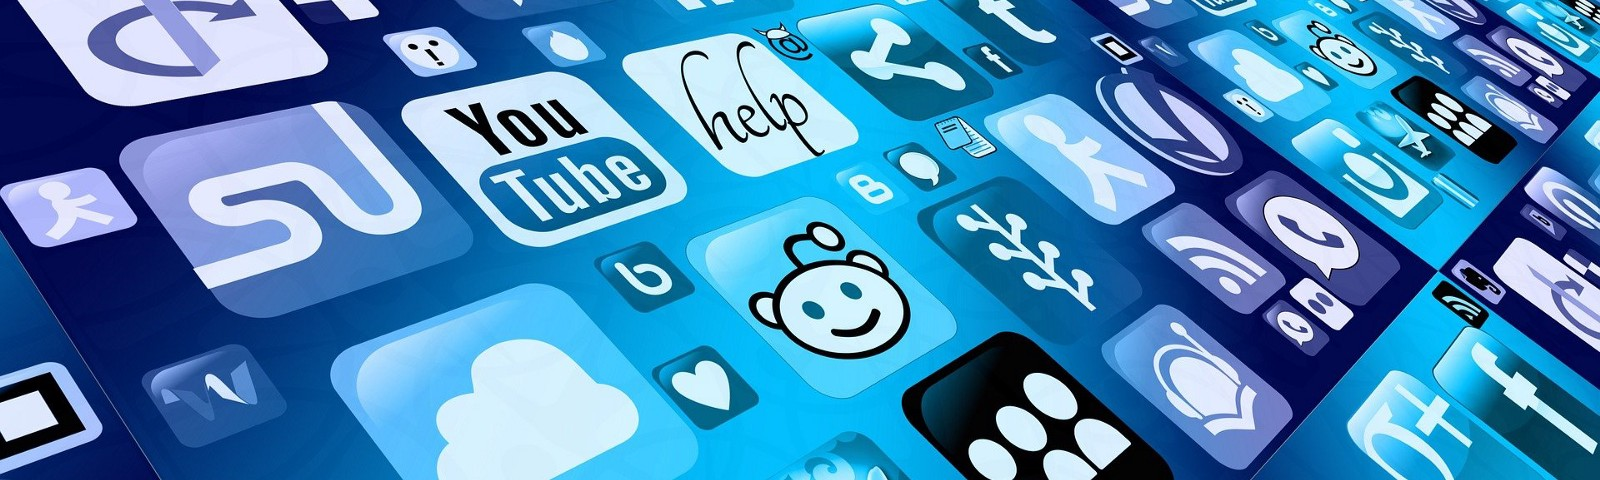 Blue collage of social media app icons